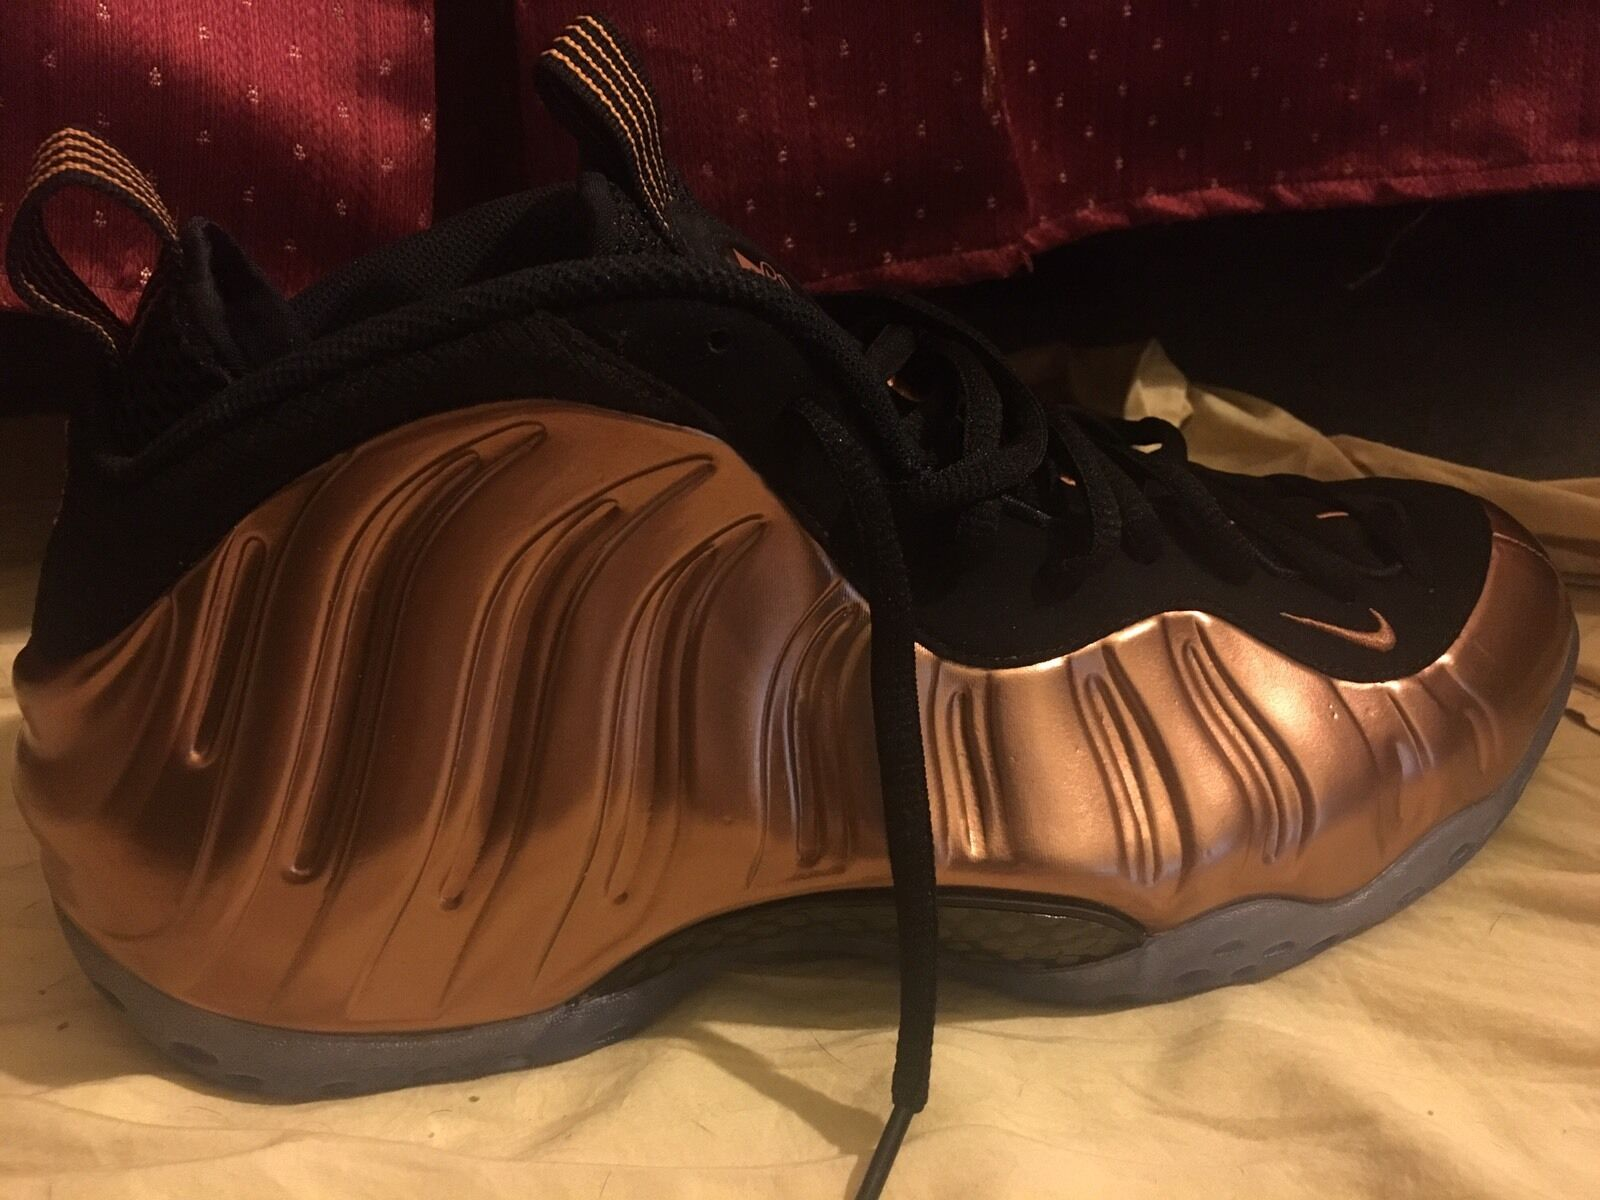 Nike Air Foamposite Copper  Cheap and fashionable